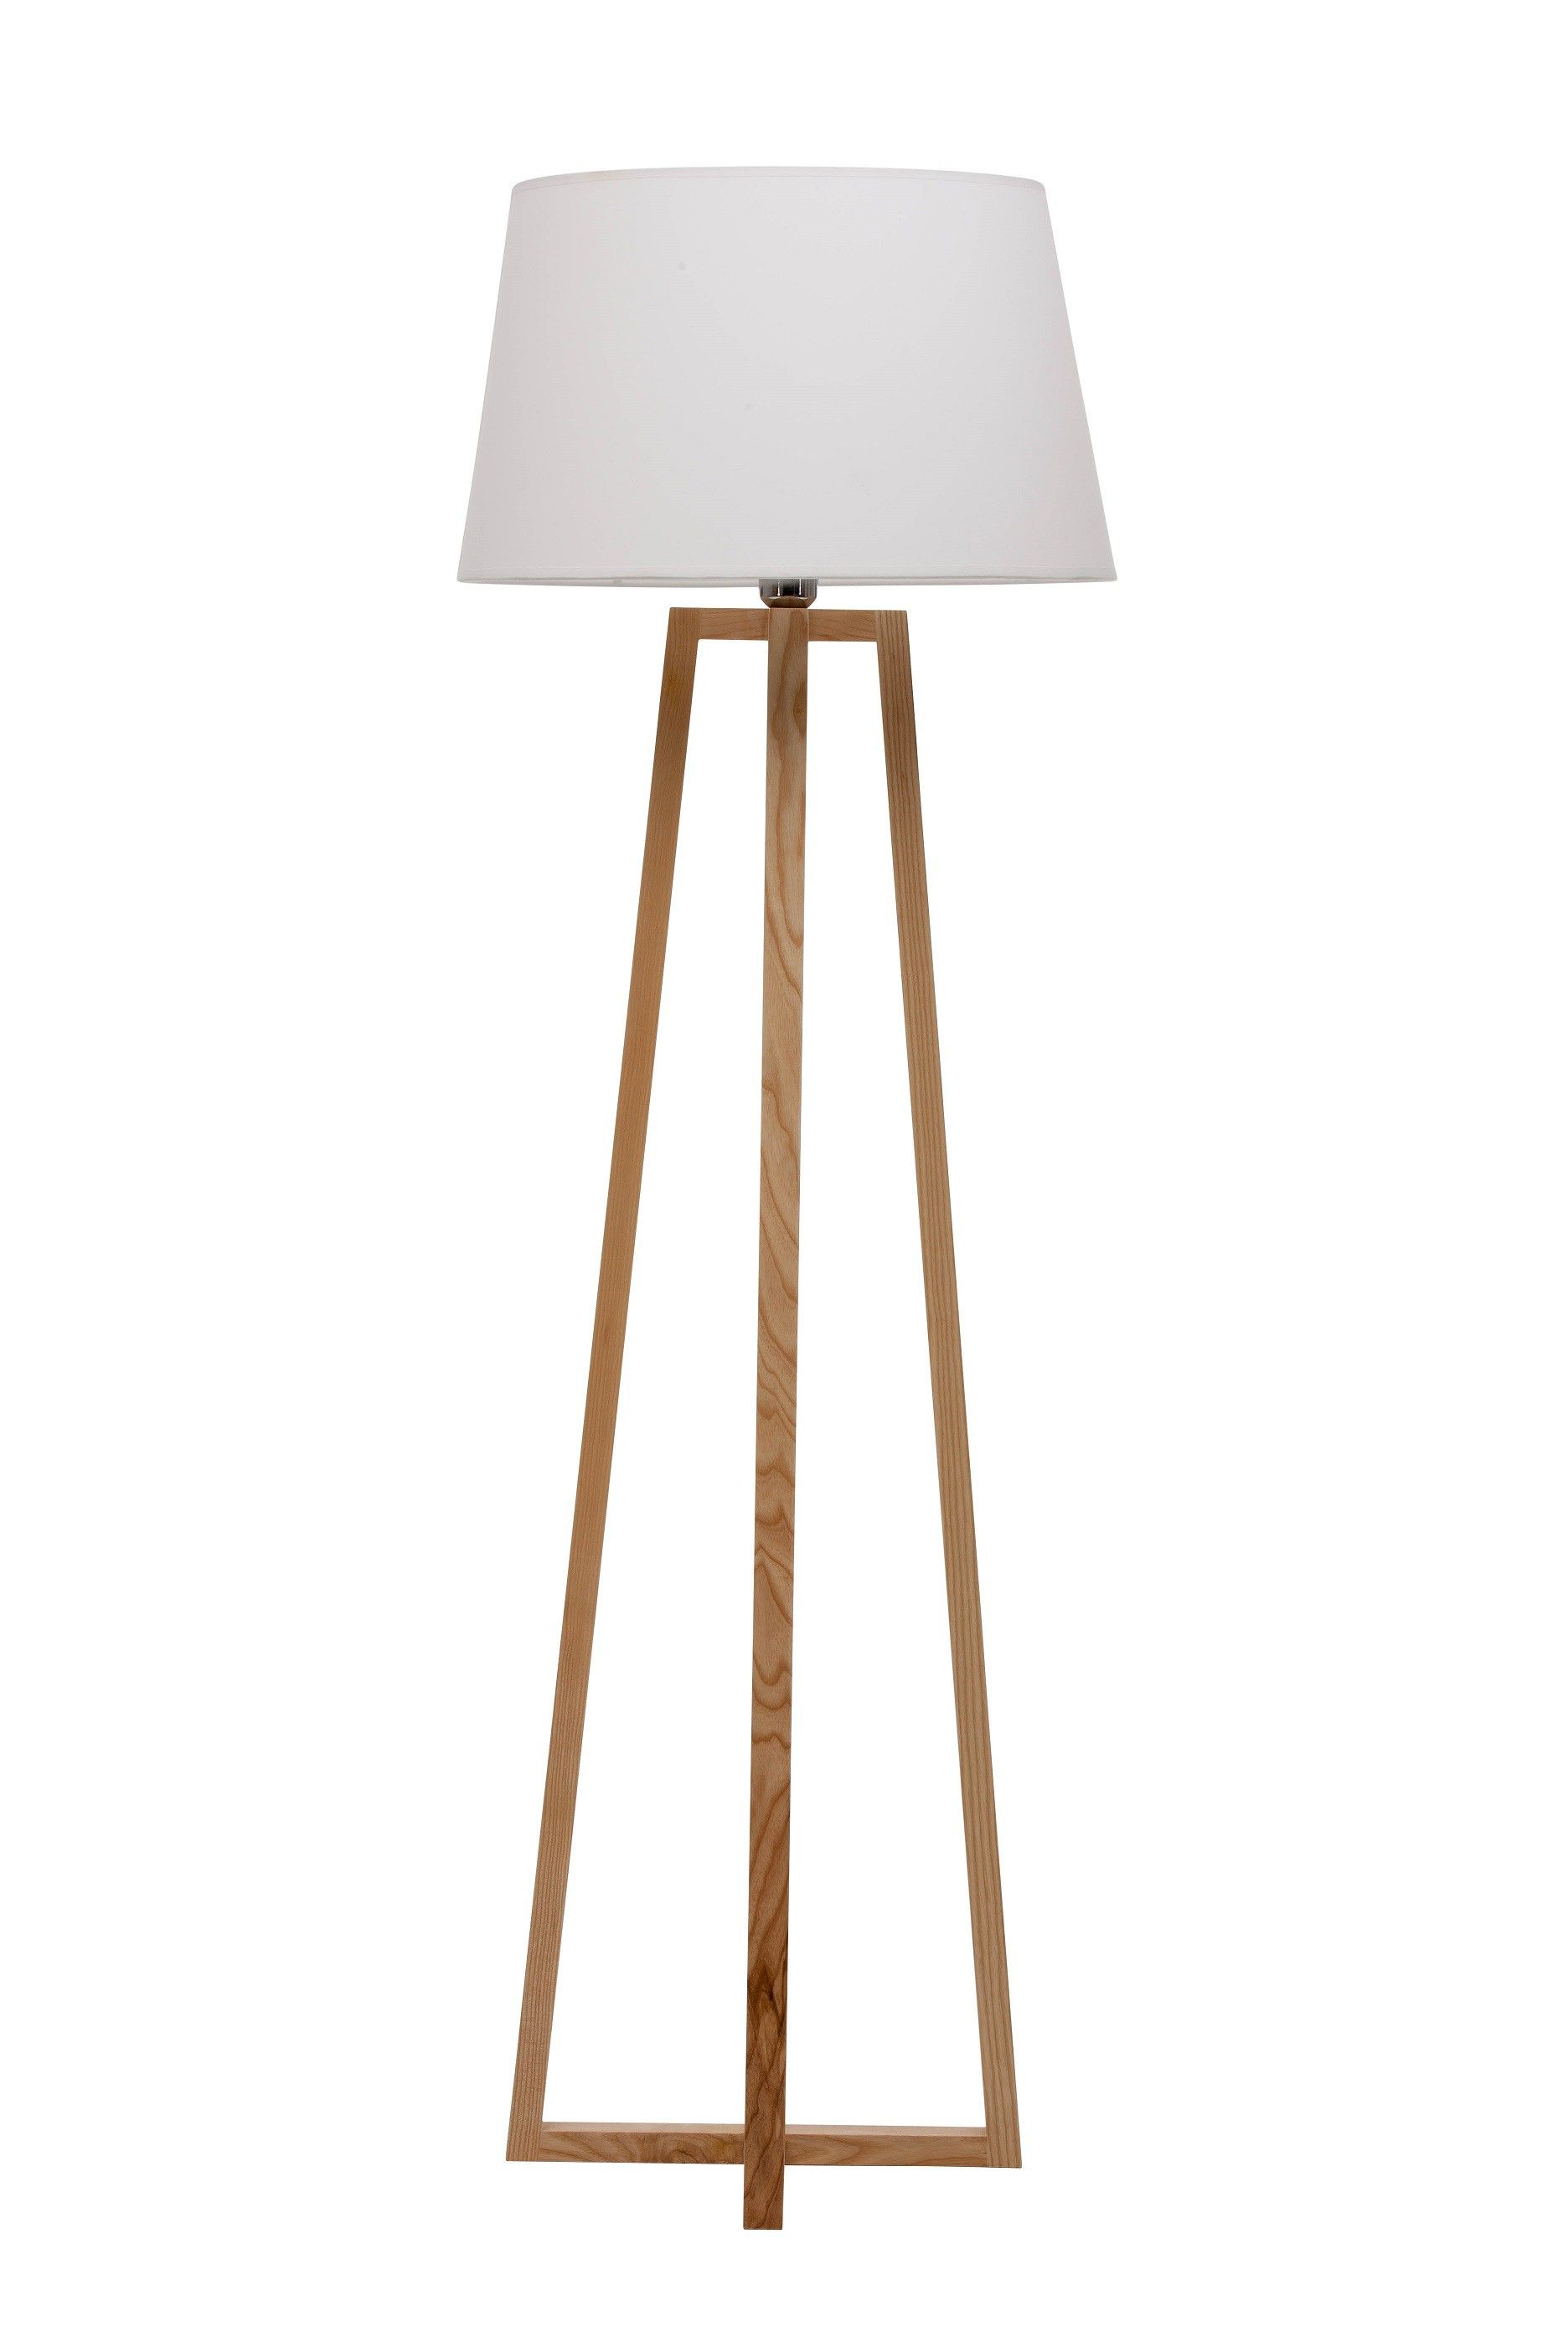 Modern floor lamp this stunning modern floor lamp is elegantly modern floor lamp this stunning modern floor lamp is elegantly designed with a simple construction the cross wood base is carefully constructed from aloadofball Gallery